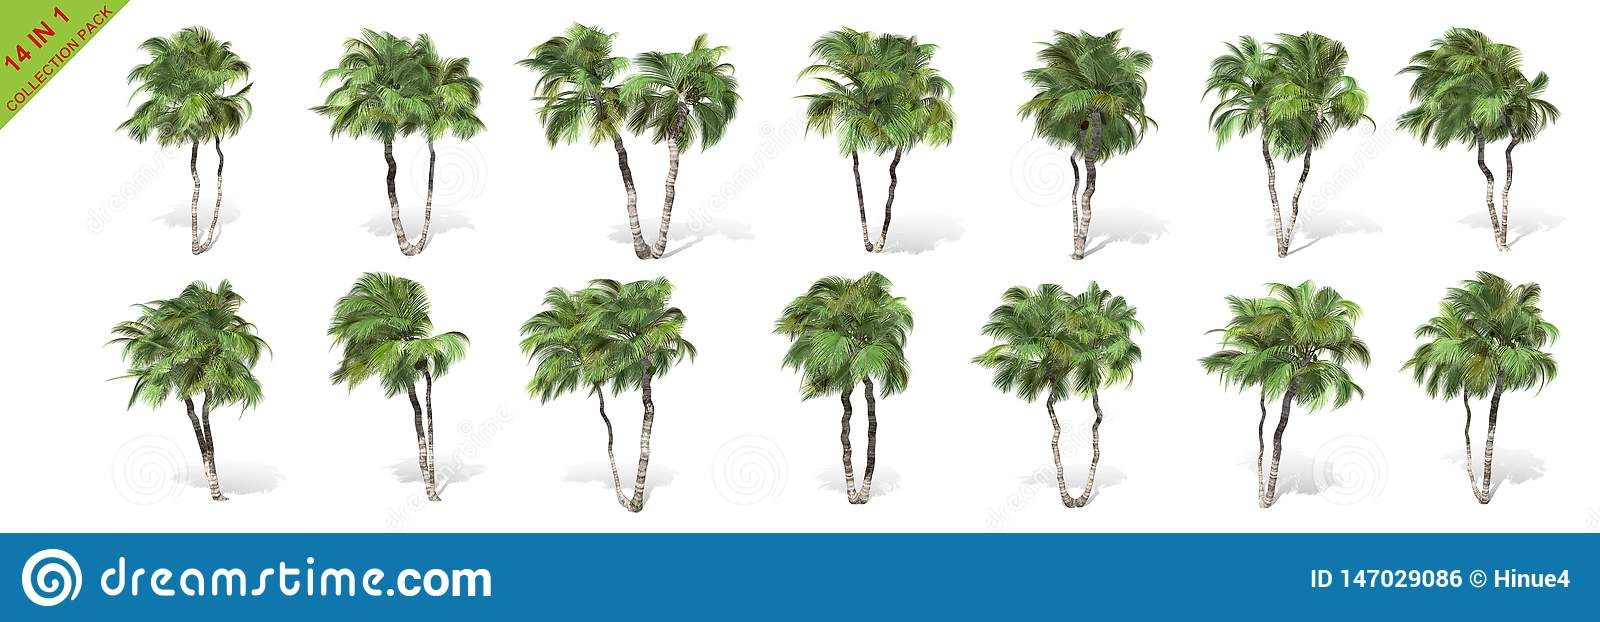 3D rendering - 14 in 1 collection of tall coconut trees isolated over a white background